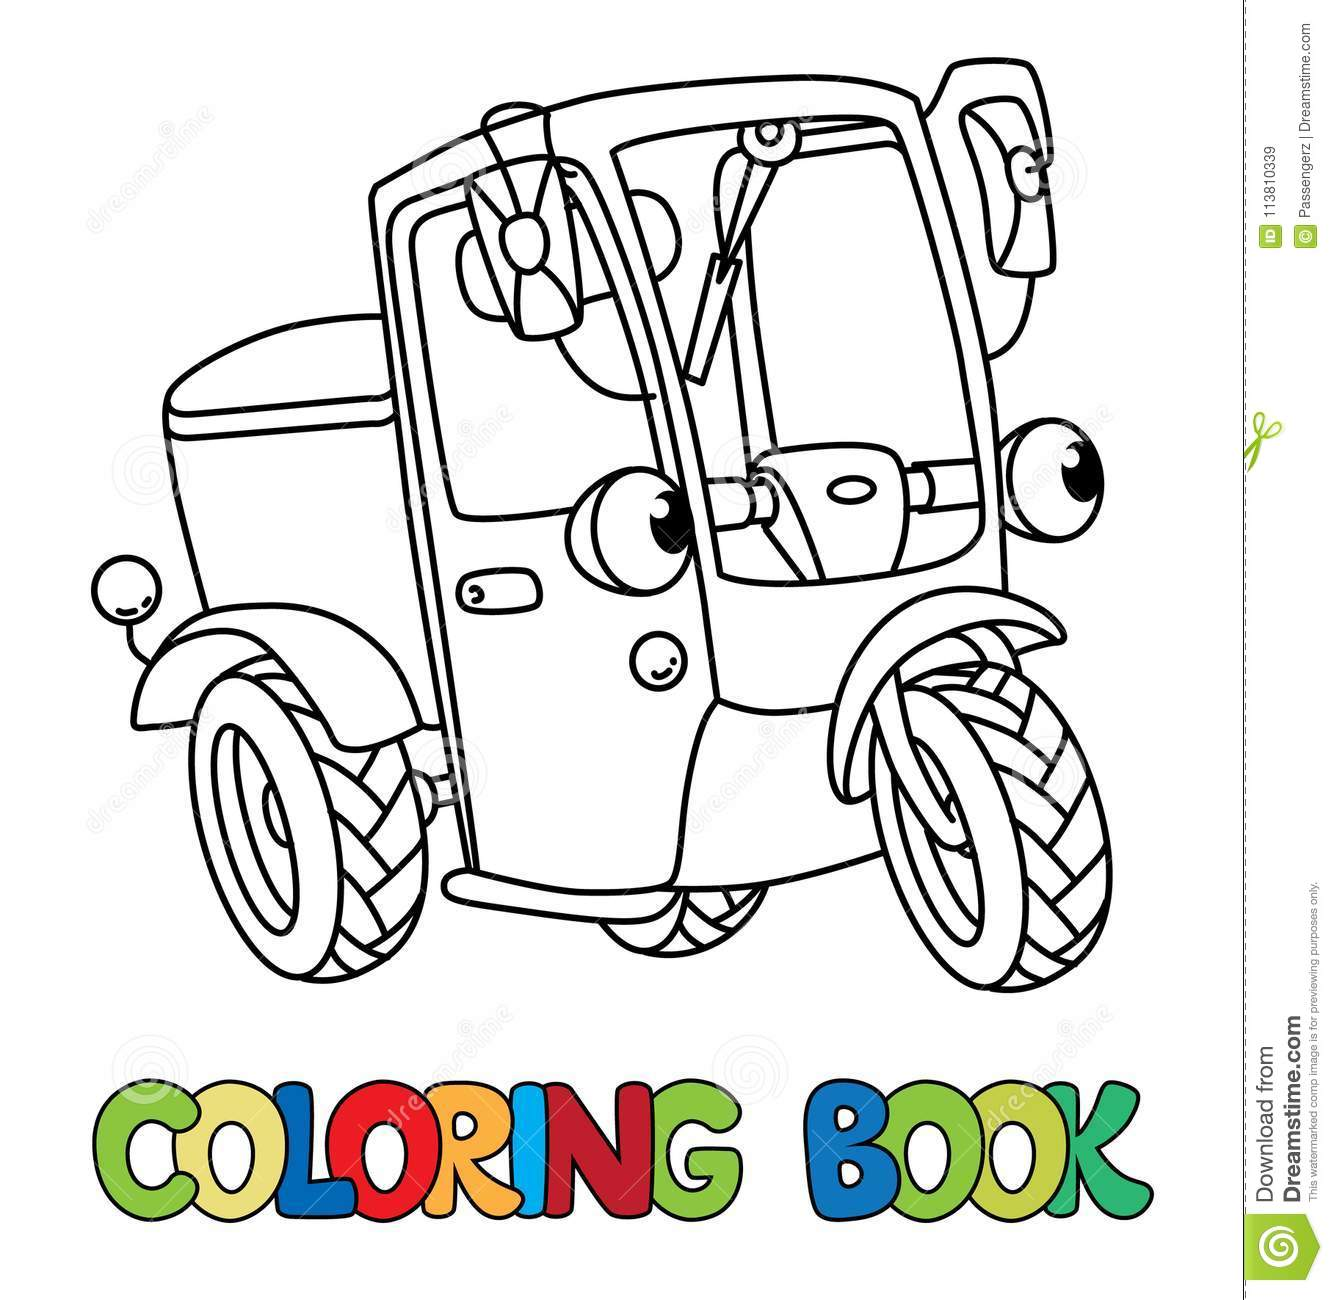 Funny Small Scooter Or Car With Eyes Coloring Book Stock Vector